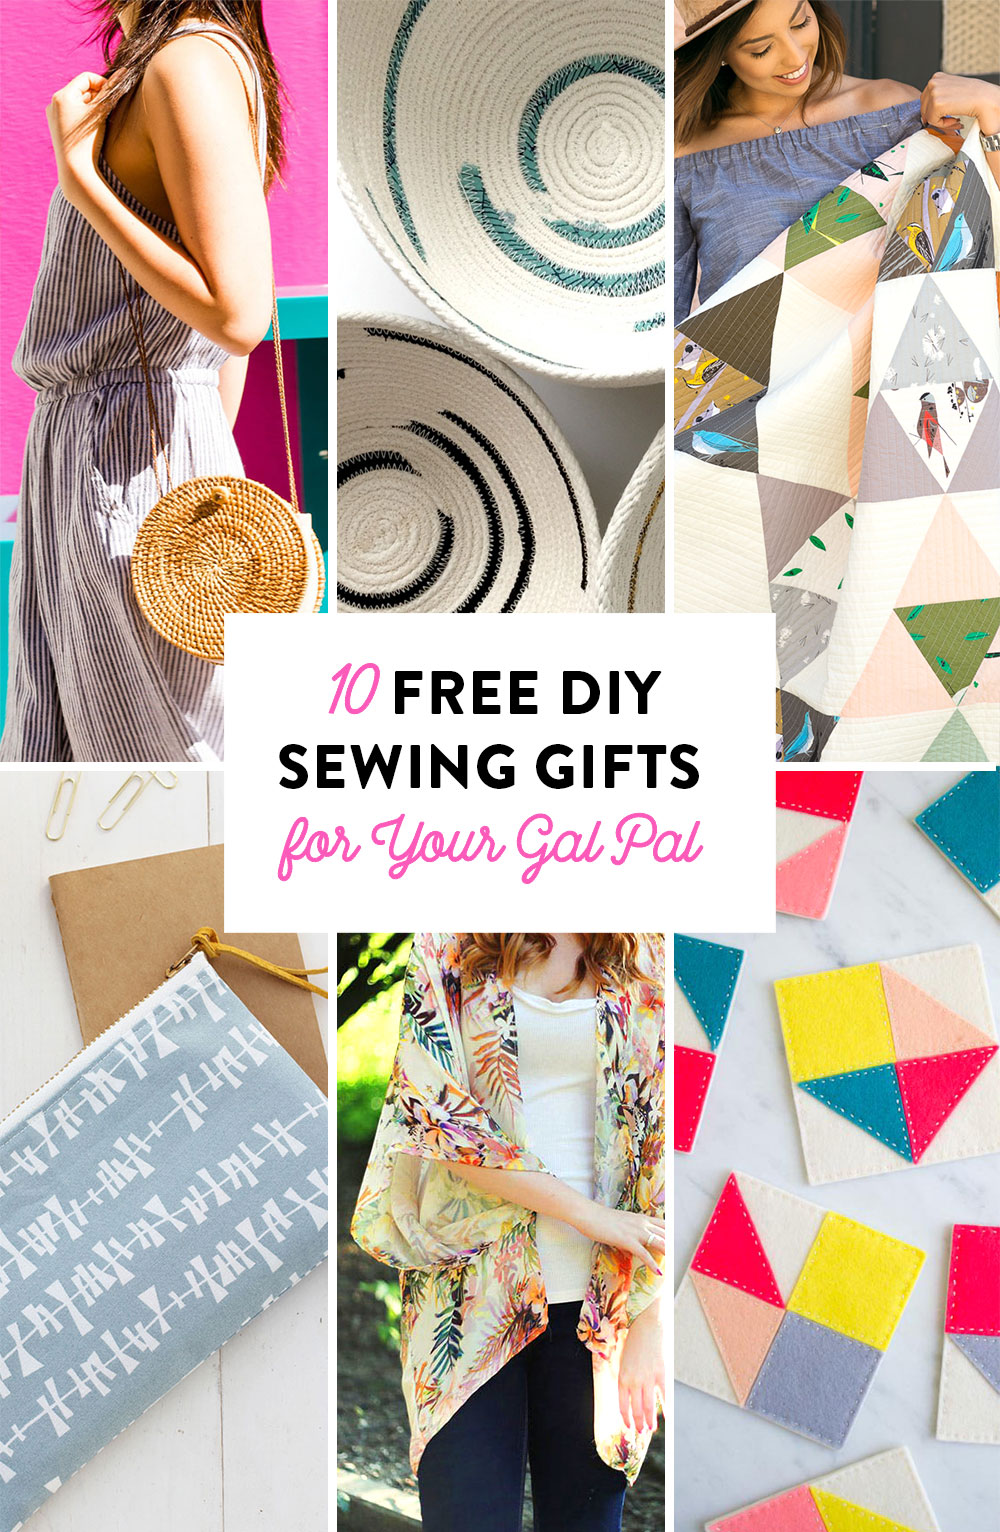 10 Free DIY Sewing Gifts for our Gal Pal | Suzy Quilts https://suzyquilts.com/free-diy-sewing-gifts-for-your-best-gal-pal